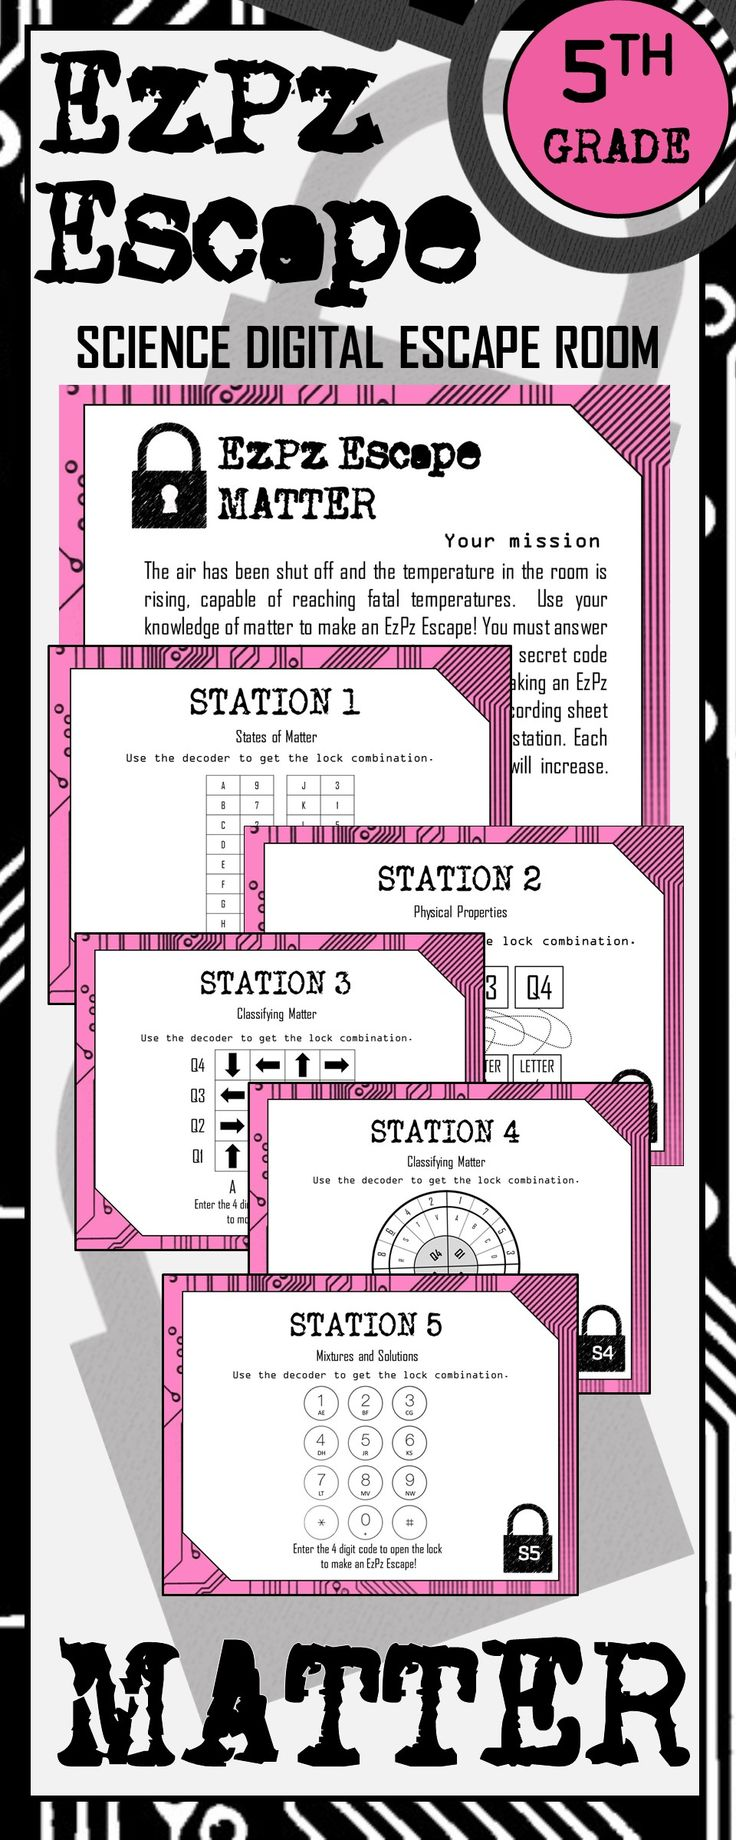 Students will have a blast with this Matter Escape Room! Students will use their knowledge of the matter to make an EzPz Escape! Students are required to answer station cards and use a decoder to get the code that will break them out of the digital room. There are 5 stations with 4 questions per station. Stations include: 1. States of Matter 2. Physical Properties 3. Classifying Matter (mass, magnetism, relative density, solubility, conductors/insulators) 4. Classifying Matter...